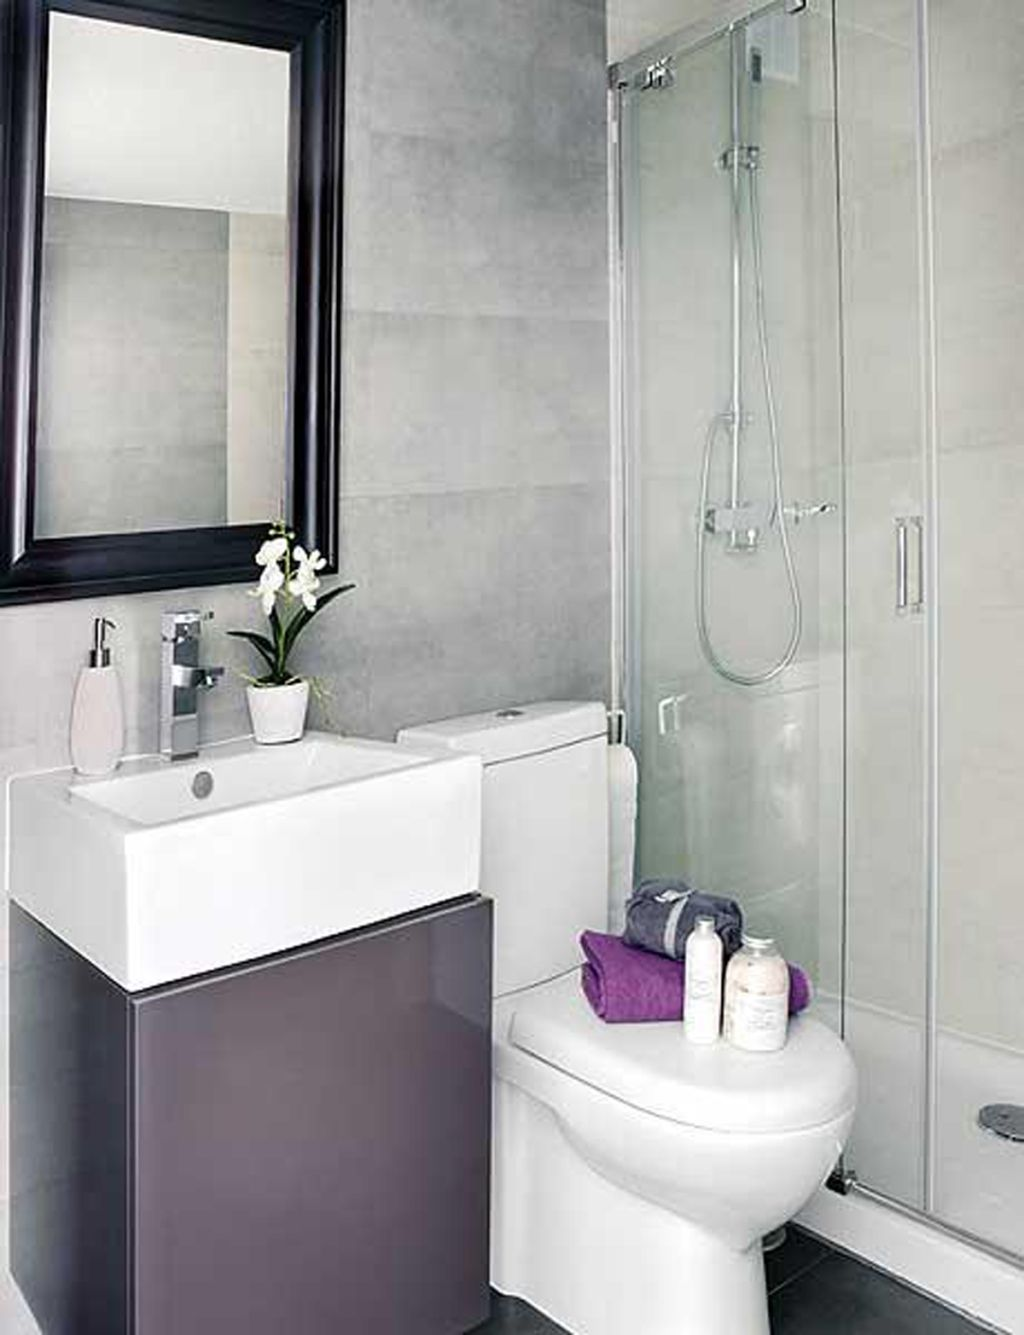 Small Bathroom Design In Malaysia Home Design Very Small Bathroom Tiny Bathrooms Small Apartment Bathroom